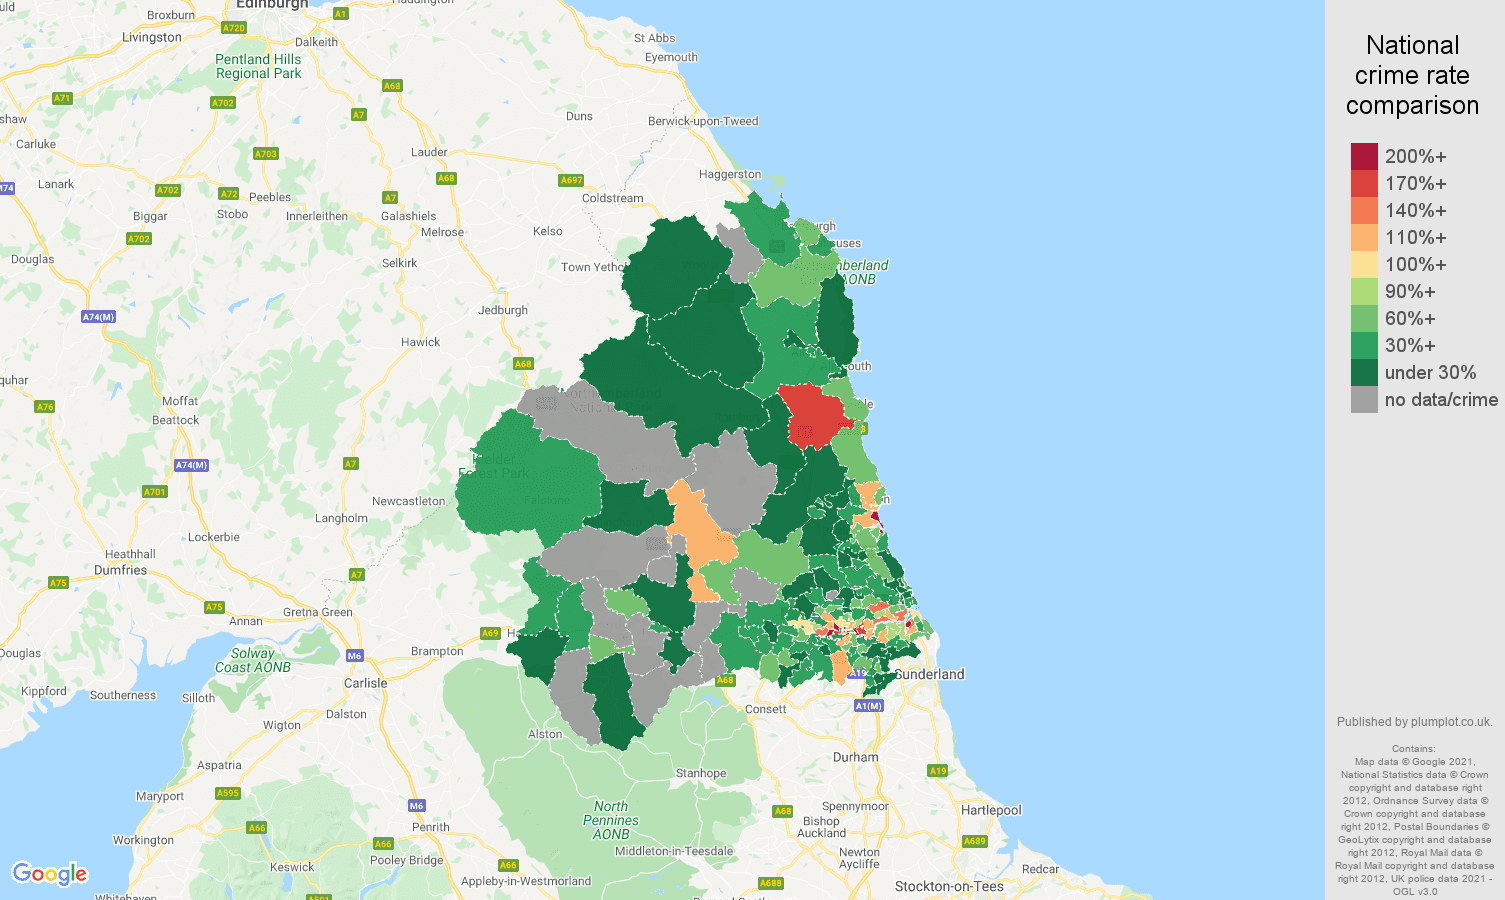 Newcastle upon Tyne drugs crime rate comparison map